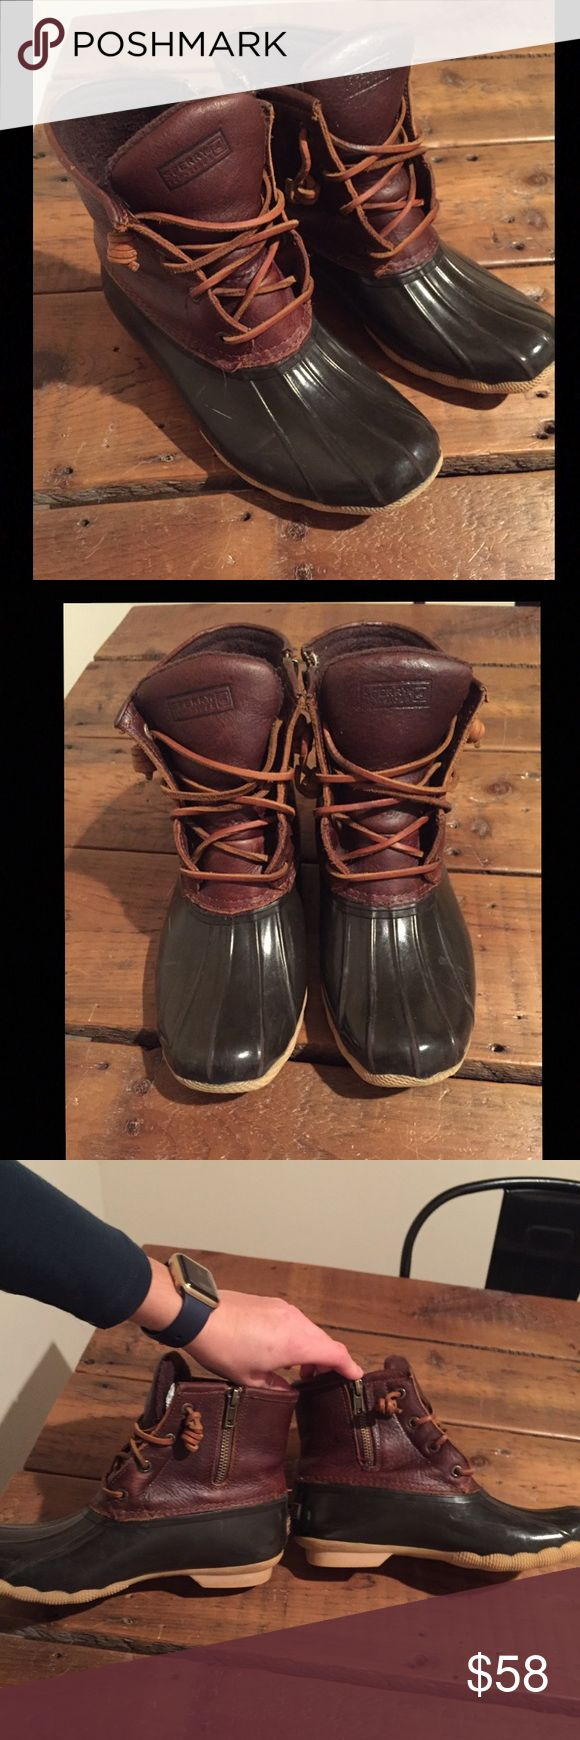 Women's Sperry Duck Boots! Used but in fantastic shape! Brown waterproof rubber with a brown leather top. Adorable boots! Sperry Shoes Winter & Rain Boots